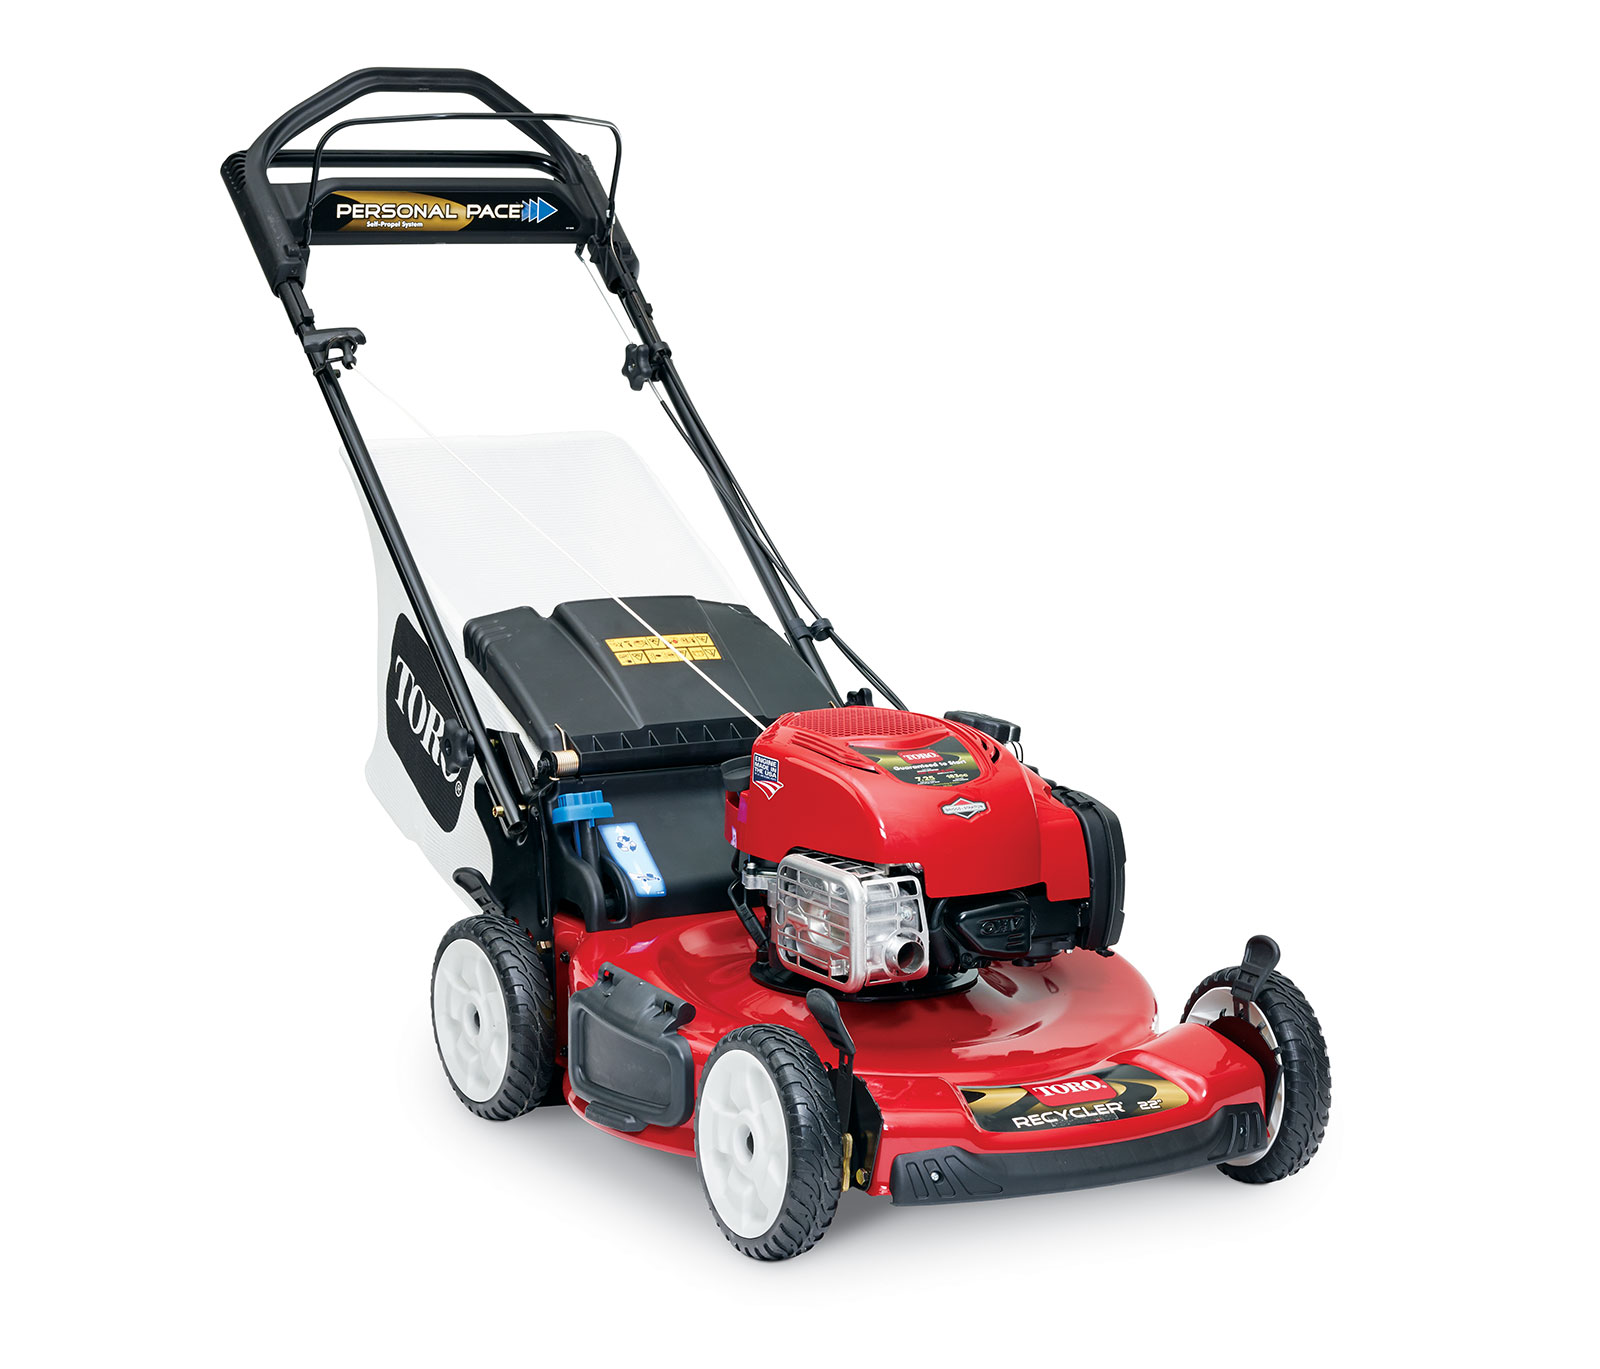 toro 22 56 cm personal pace lawn mower rh toro com toro personal pace mower parts diagram toro personal pace mower manual for 20374